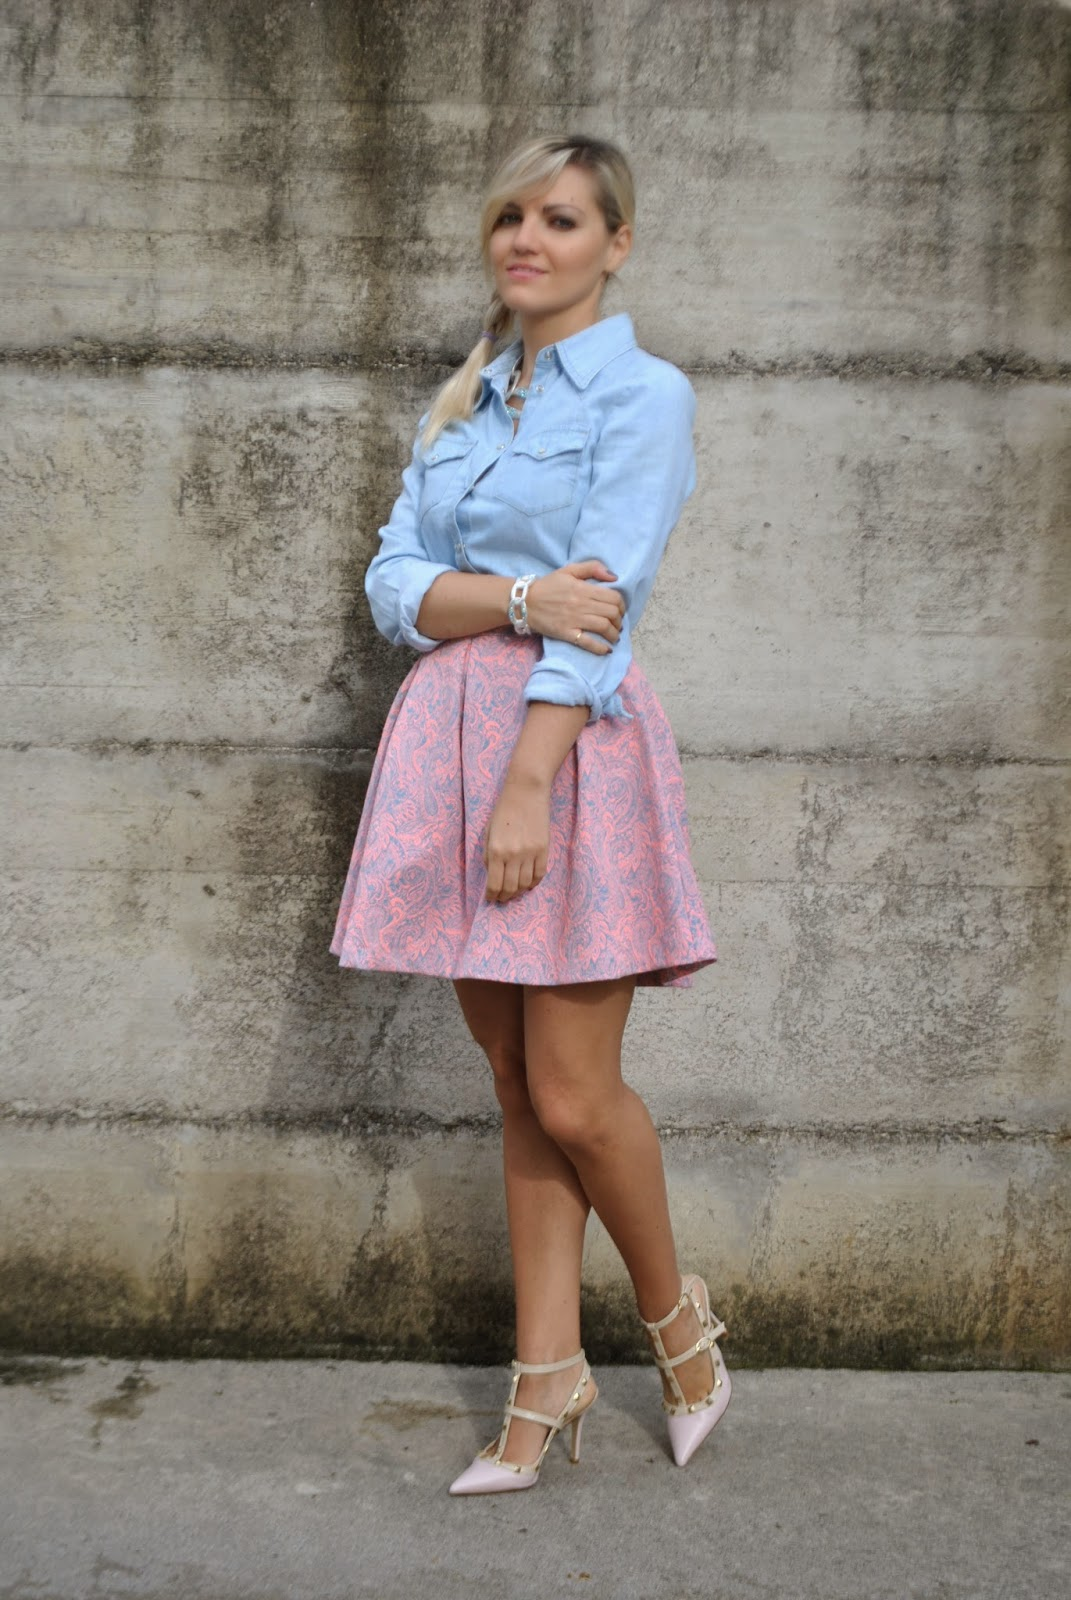 autumnal outfit recap october outfits fashion bloggers italy italian girl   outfit camicia di jeans gonna a ruota rosa abbinamenti camicia jeans abbinamenti camicia in denim how to wear denim shirt abbinamenti gonna a ruota come abbinare la gonna  a ruota how to wear round skirt gonna a ruota rosa pimkie collana majique bracciale majique majique london bracelet majique london necklace scarpe valentino rockstud mariafelicia magno mariafelicia magno fashion blogger colorblock by felym outfit ottobre 2014 recap outfit ottobre 2014 outfit autunnali